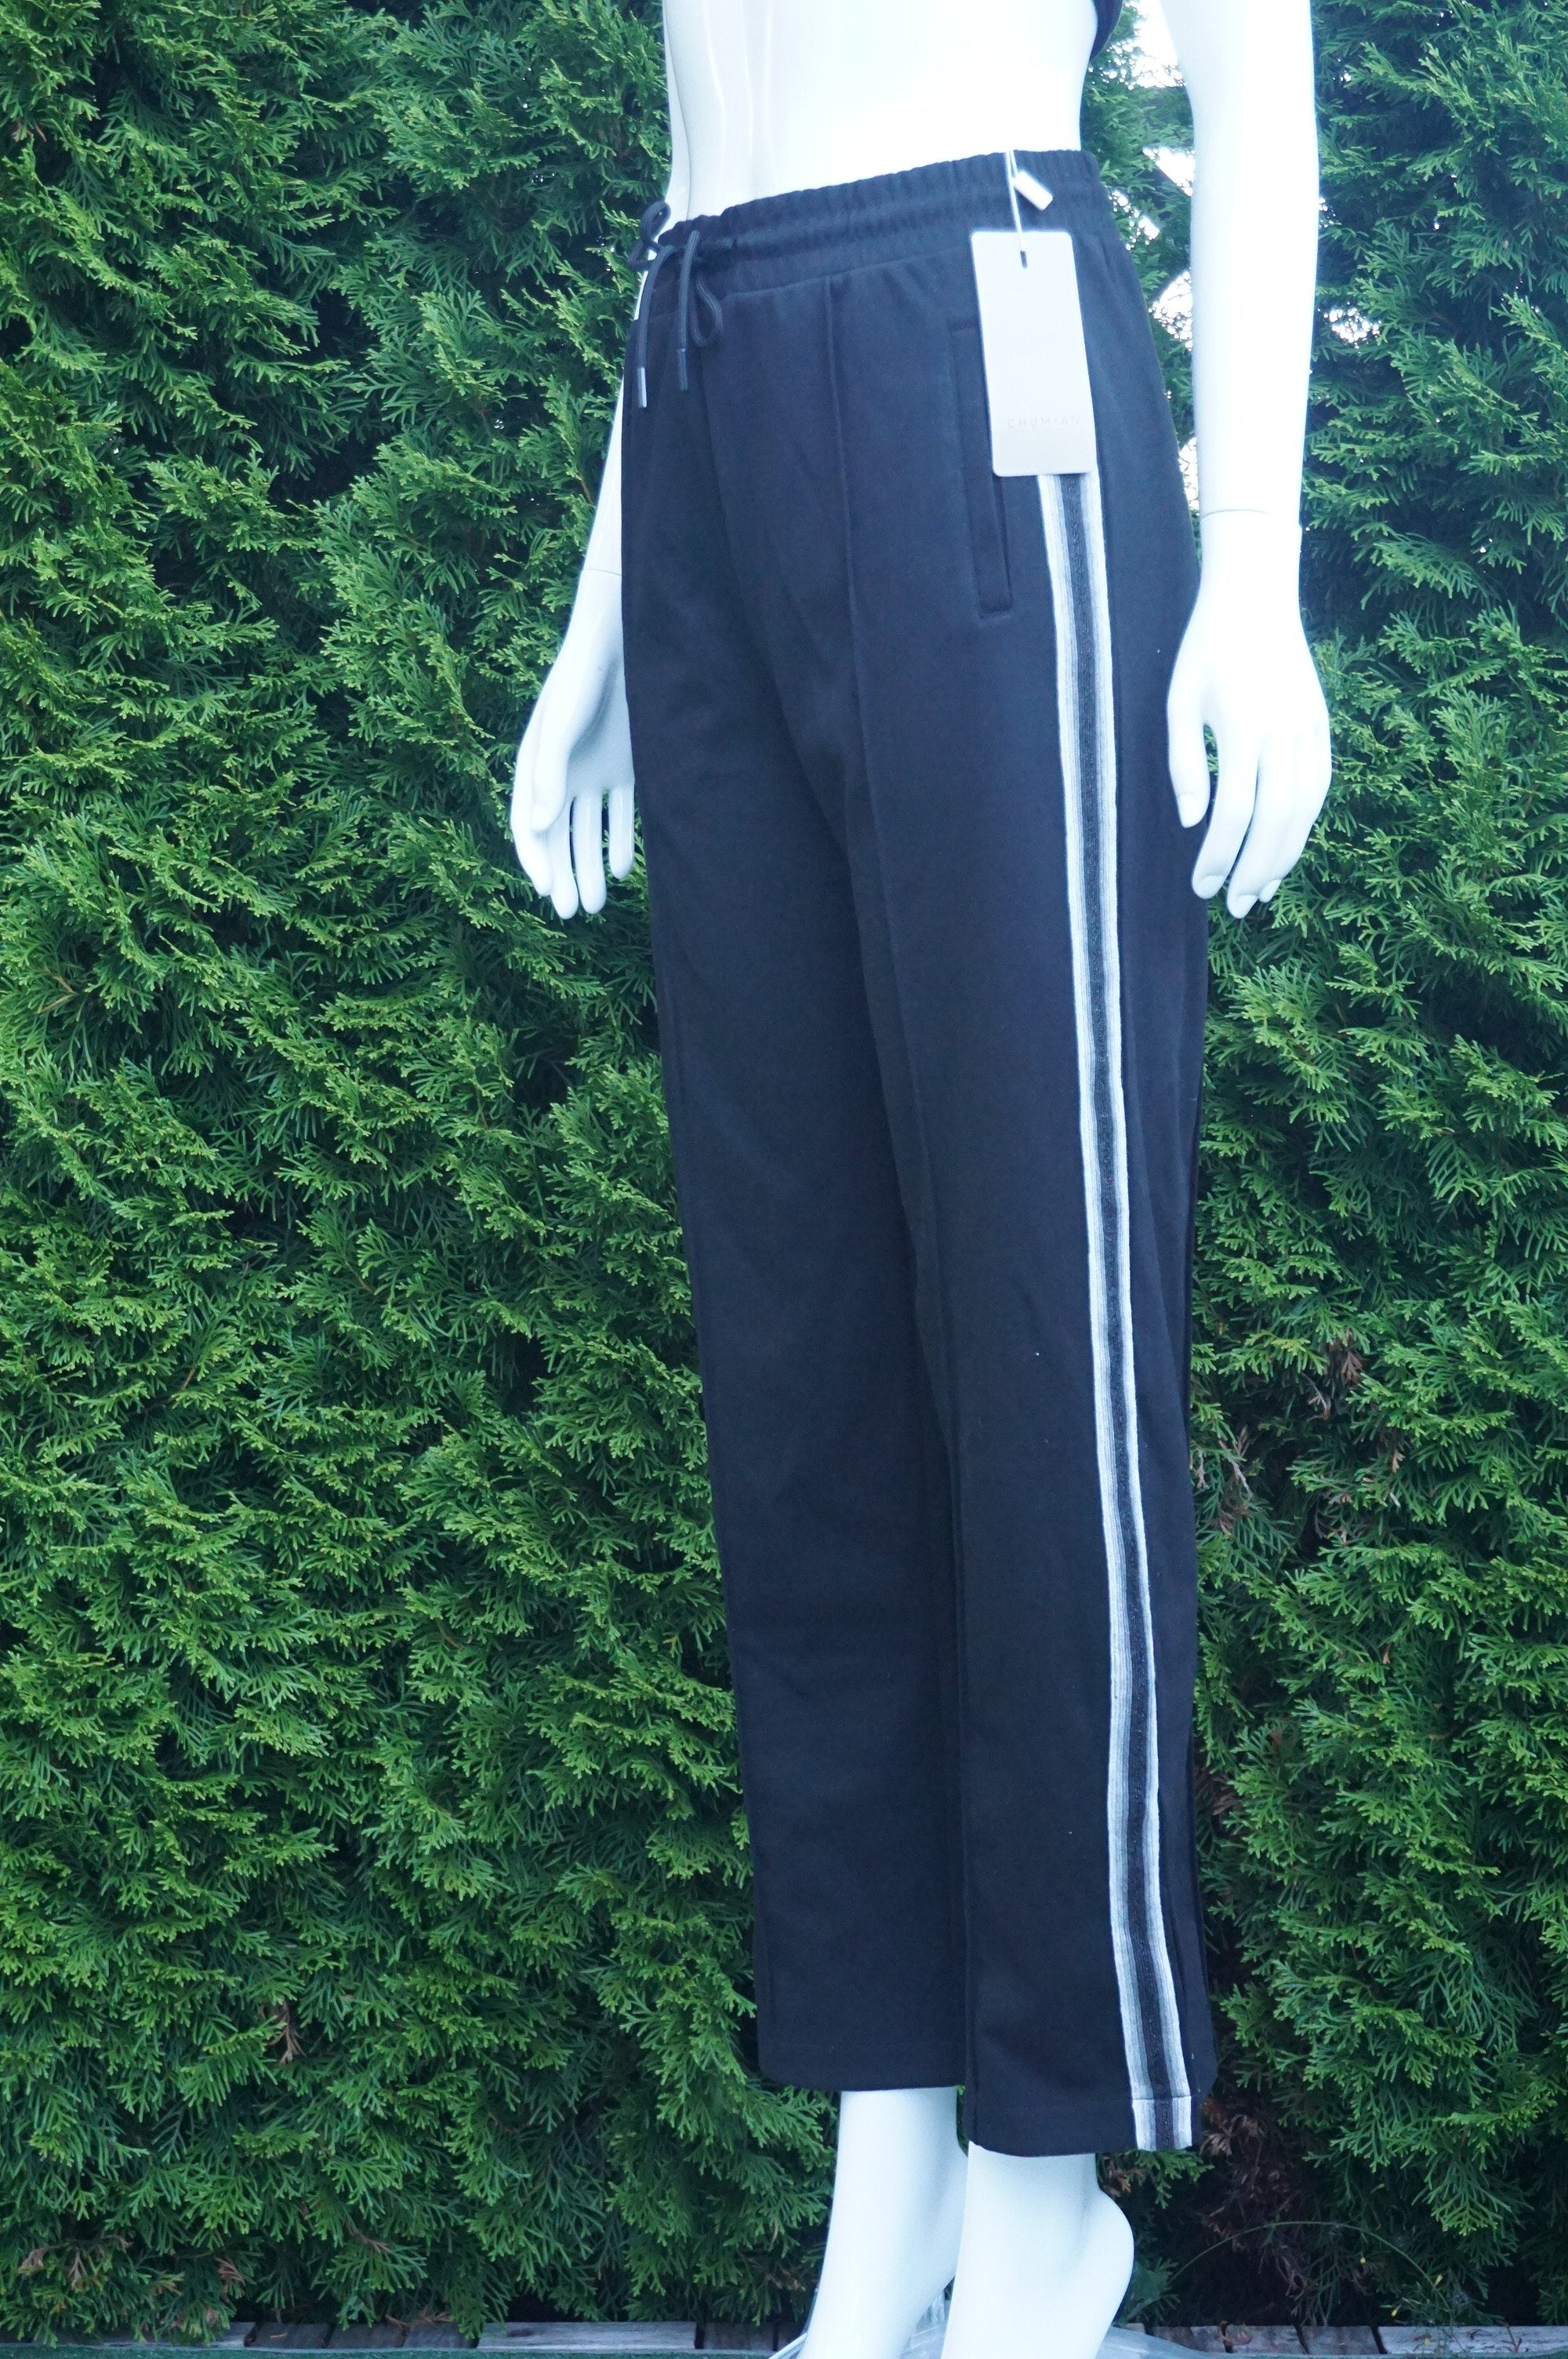 Chumian Comfy Jogger, New with tags Comfy pants for wither casual walks or staying at home :) Waist 28 inches when elastic is relaxed. Length 40 inches.  Adjustable waist strap, Black, women's Pants, women's Black Pants, Chumian women's Pants, sweatpants. Comfy pants, stay at home pants